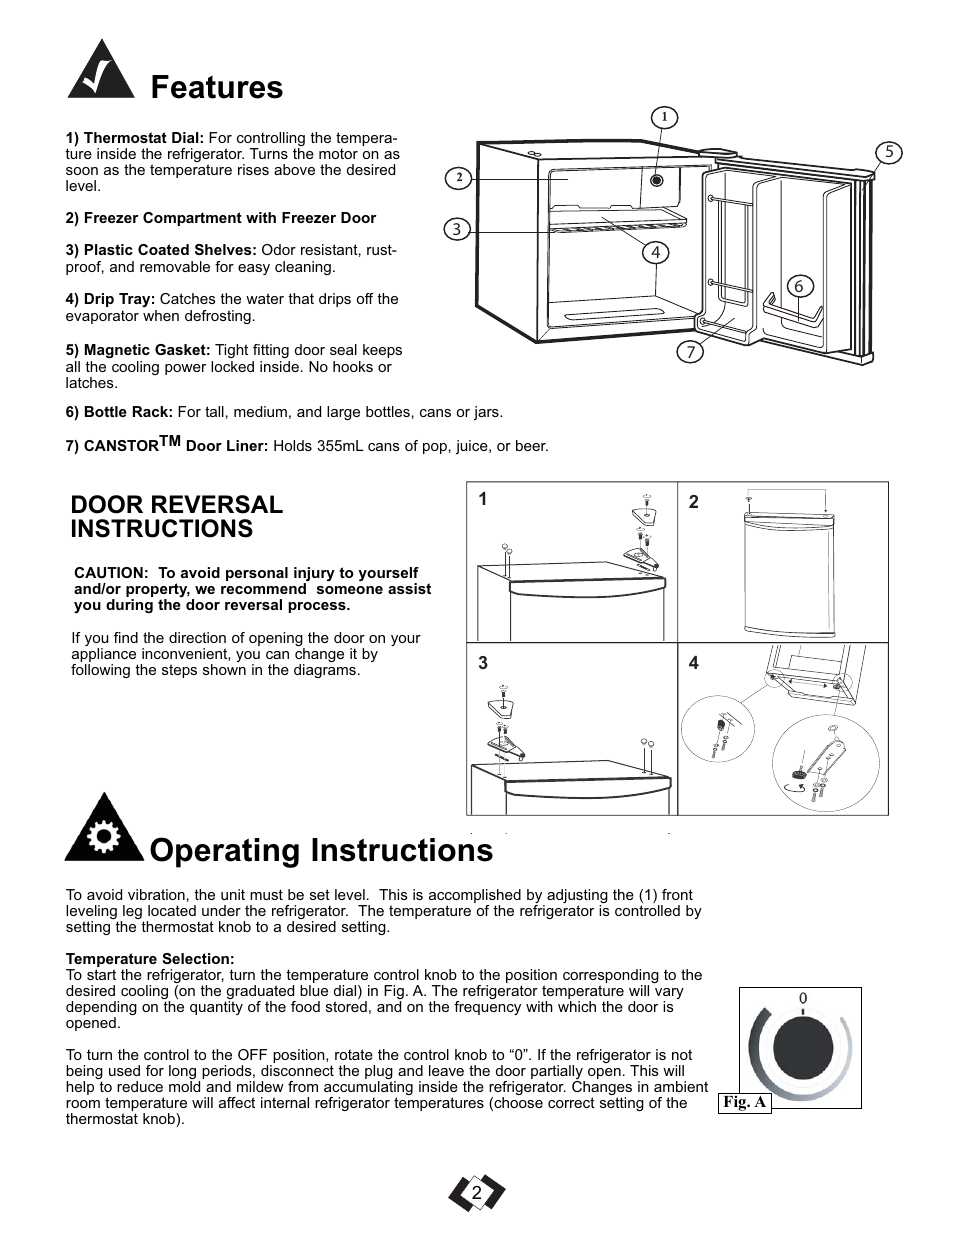 Wiring Diagrams How The Defrost Cycle Works In A Danby Refrigerator